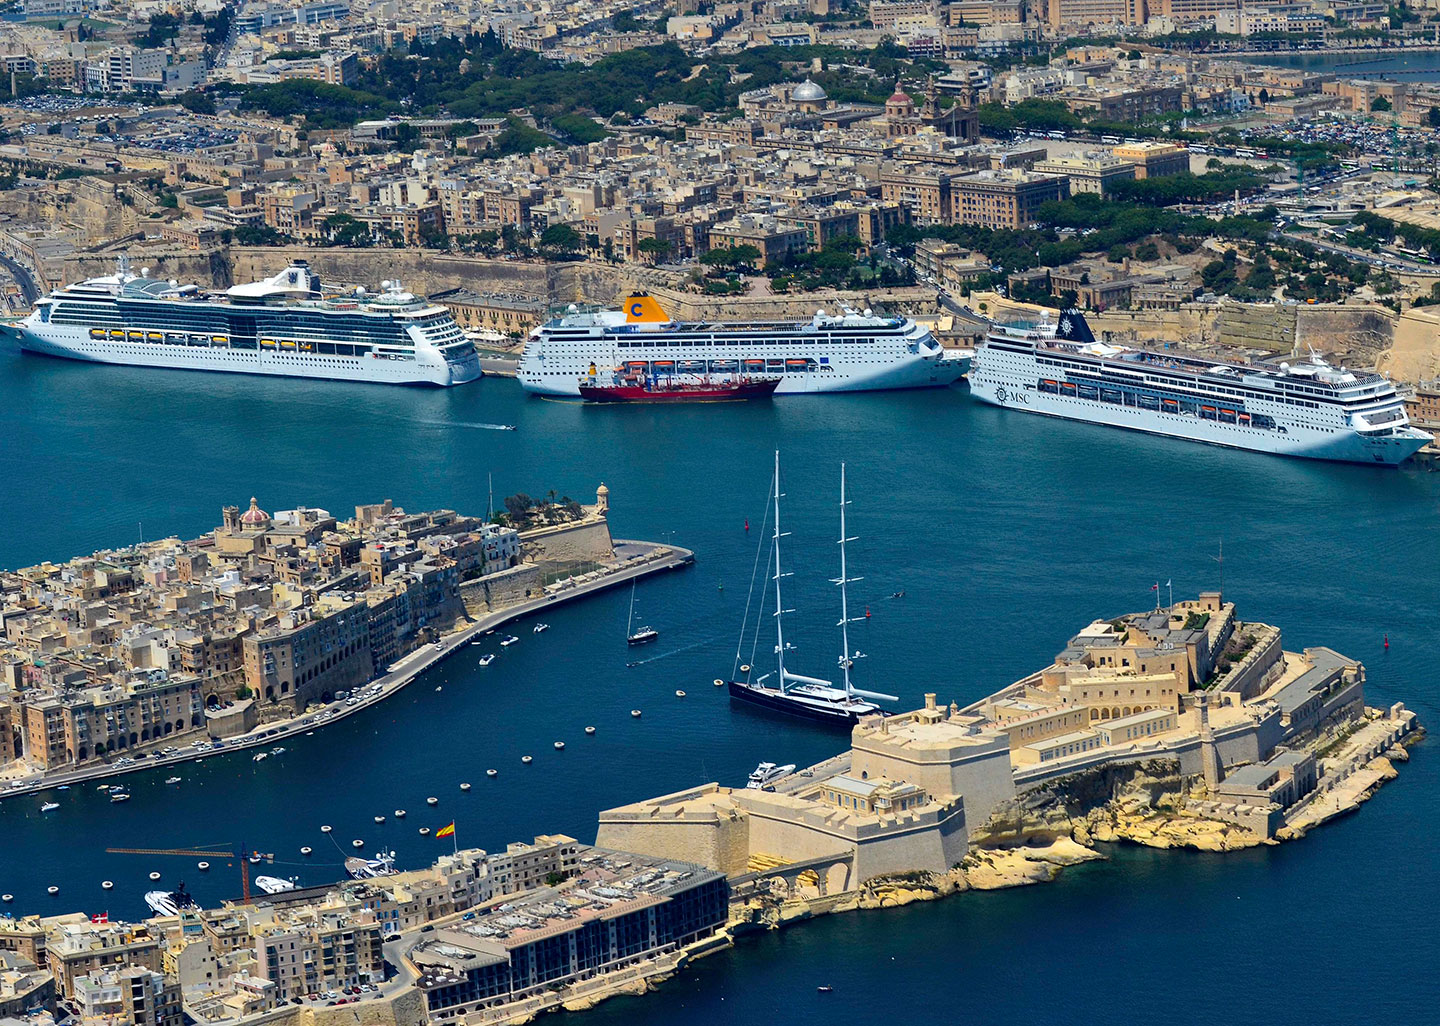 Valletta Cruise Port named as Top-Rated Mediterranean Cruise Destination